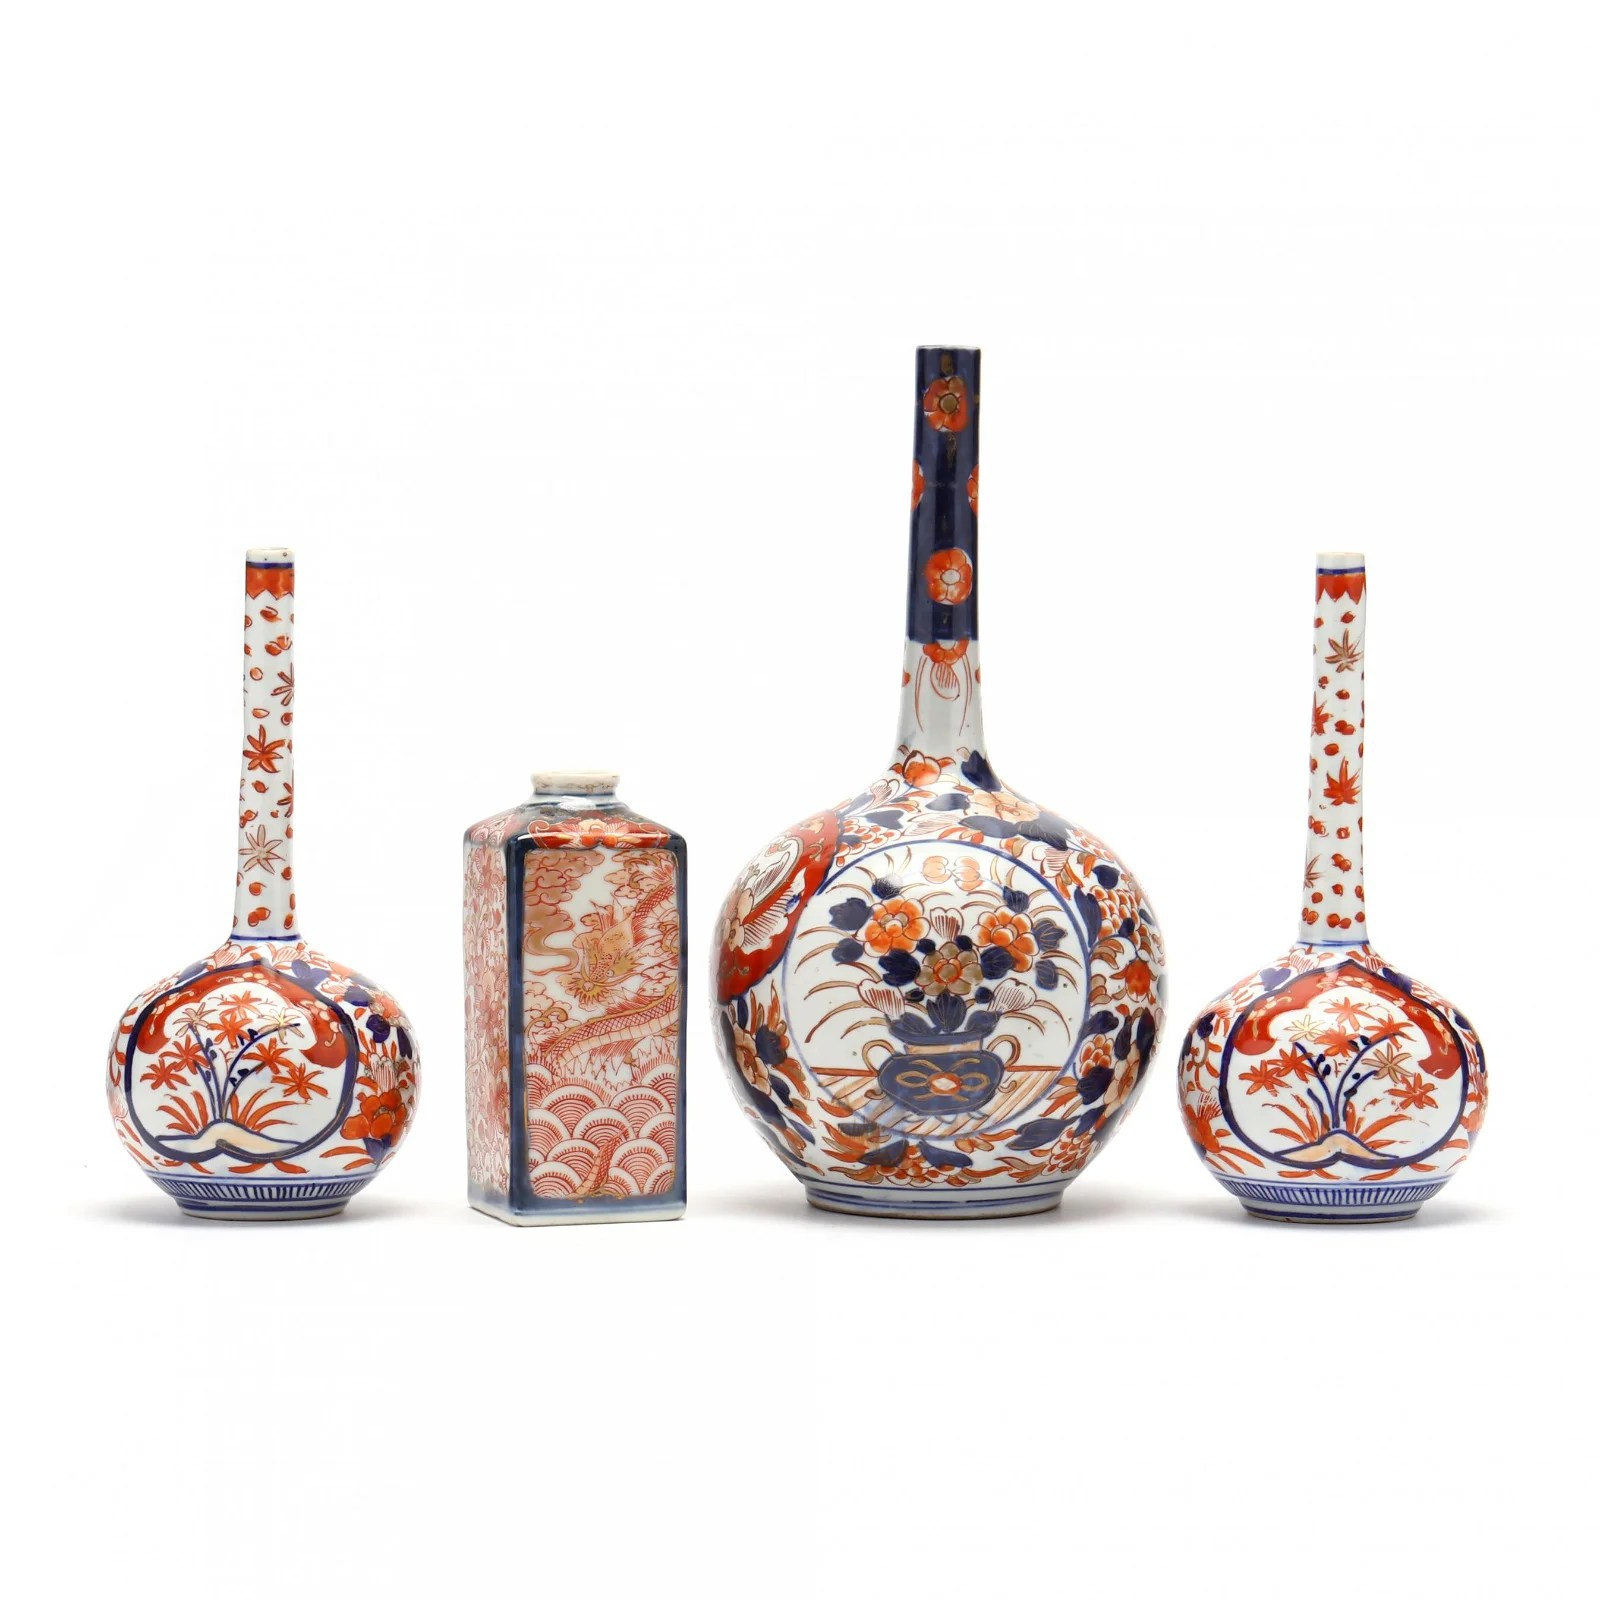 A Group of Chinese Imari Vases